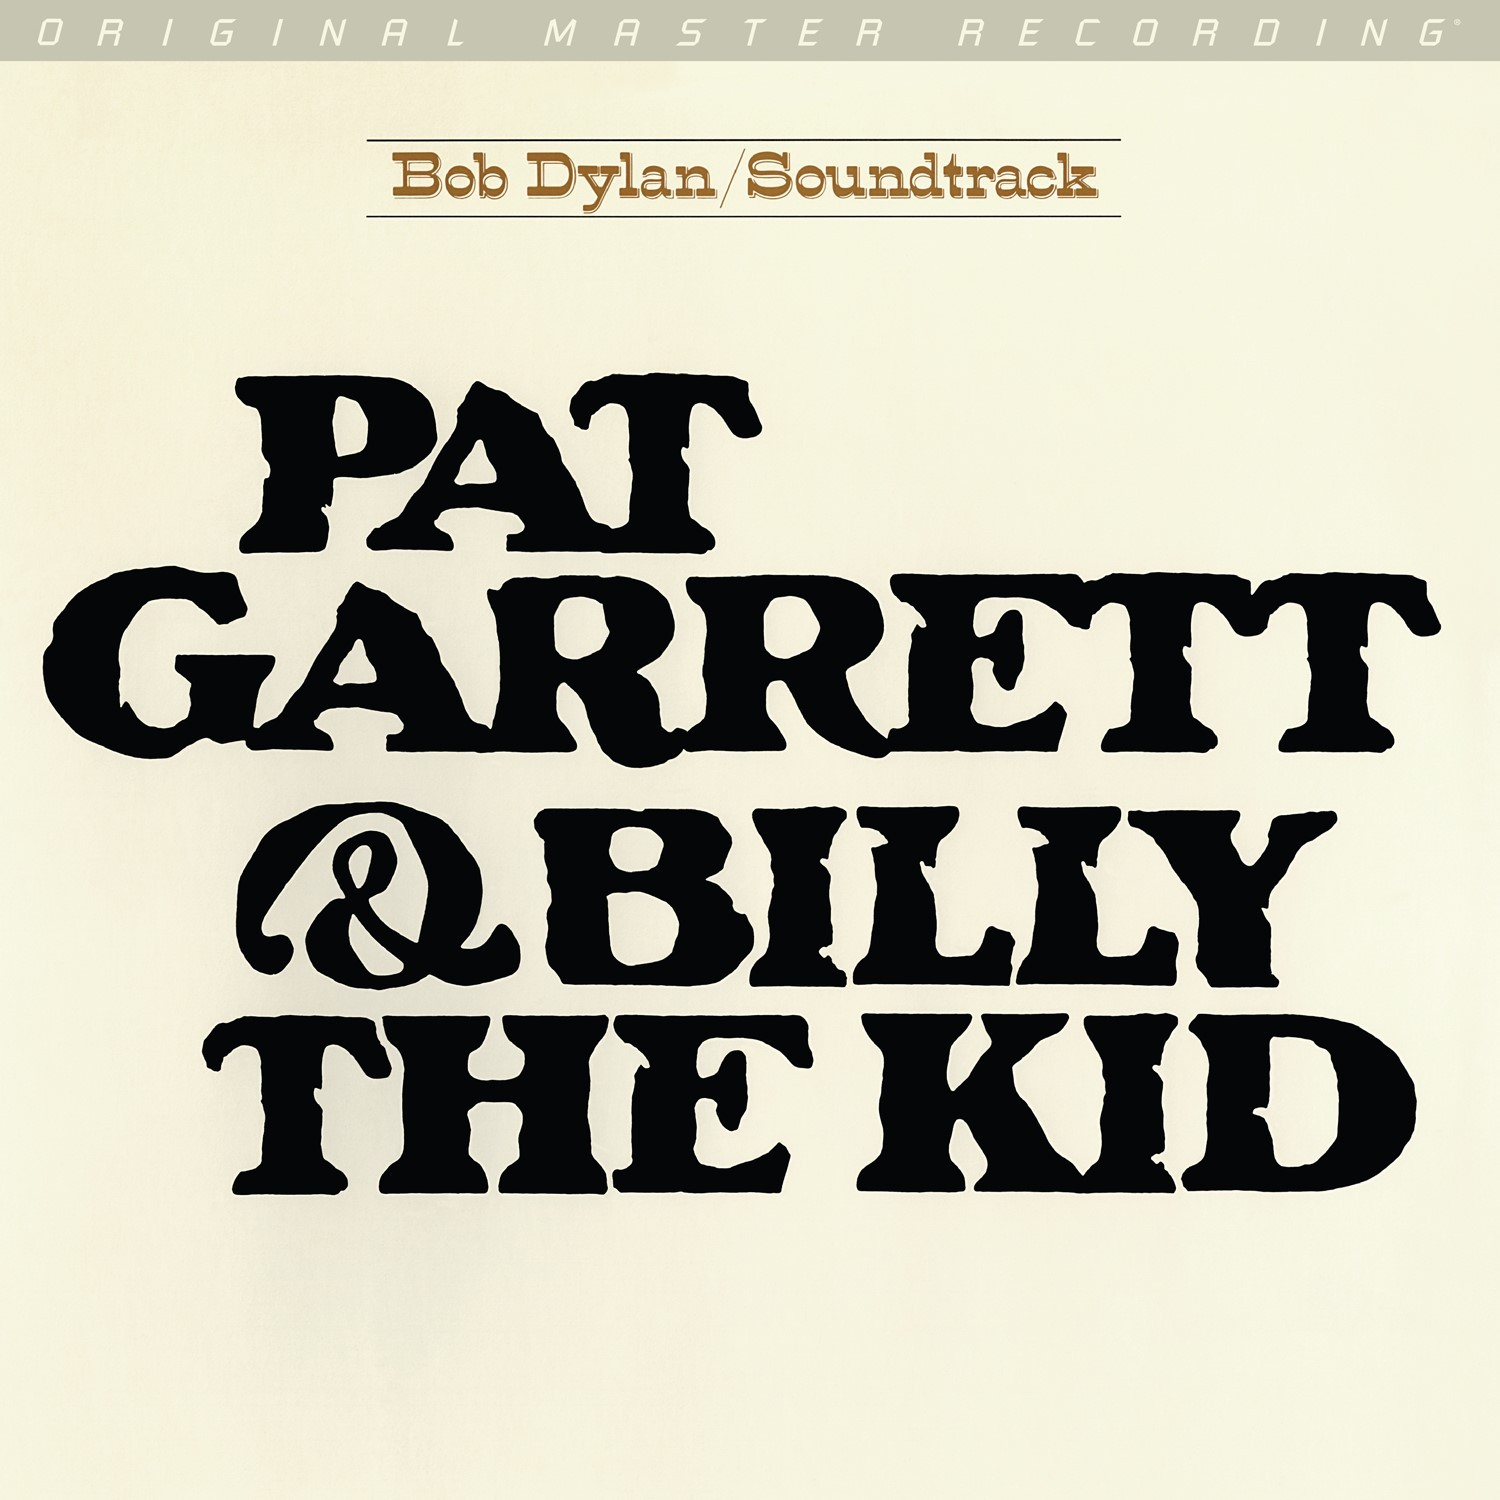 Bob Dylan - Patt Garrett & Billy the Kid Soundtrack